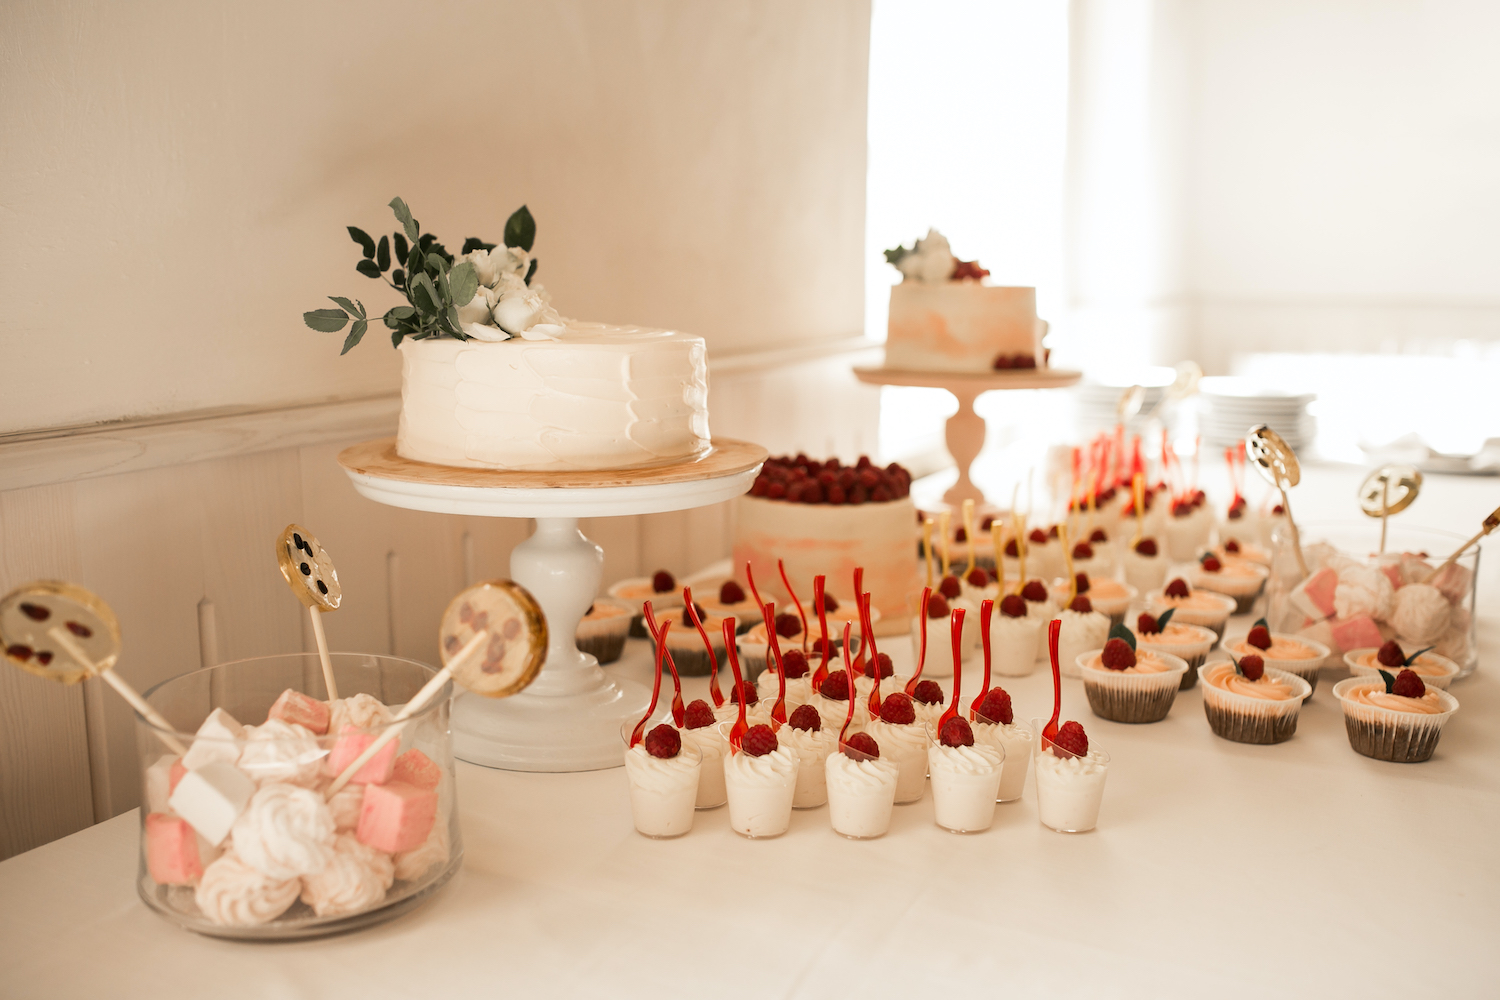 Self catering wedding venue with a delicious assortment of sweet treats and a wedding cake